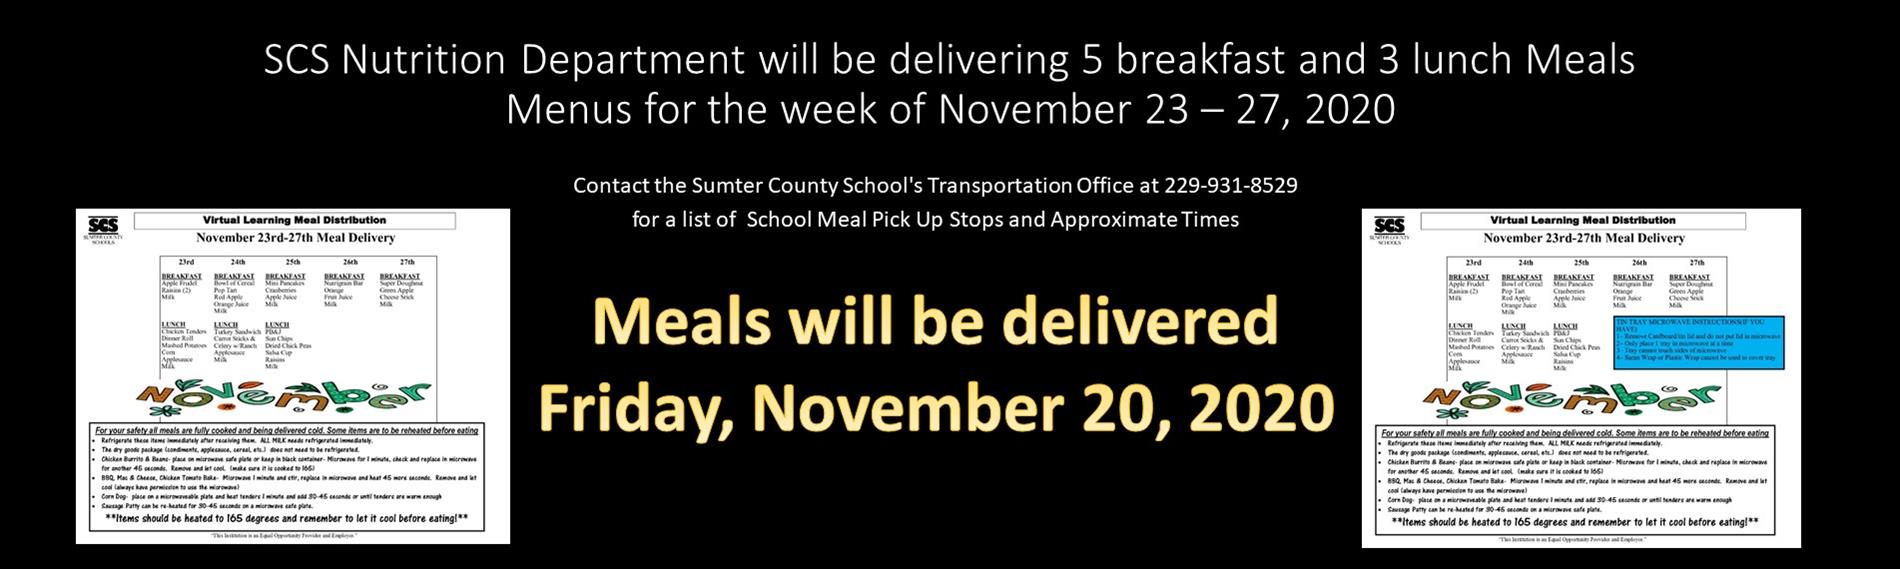 Meals will be delivered Friday, November 20, 2020